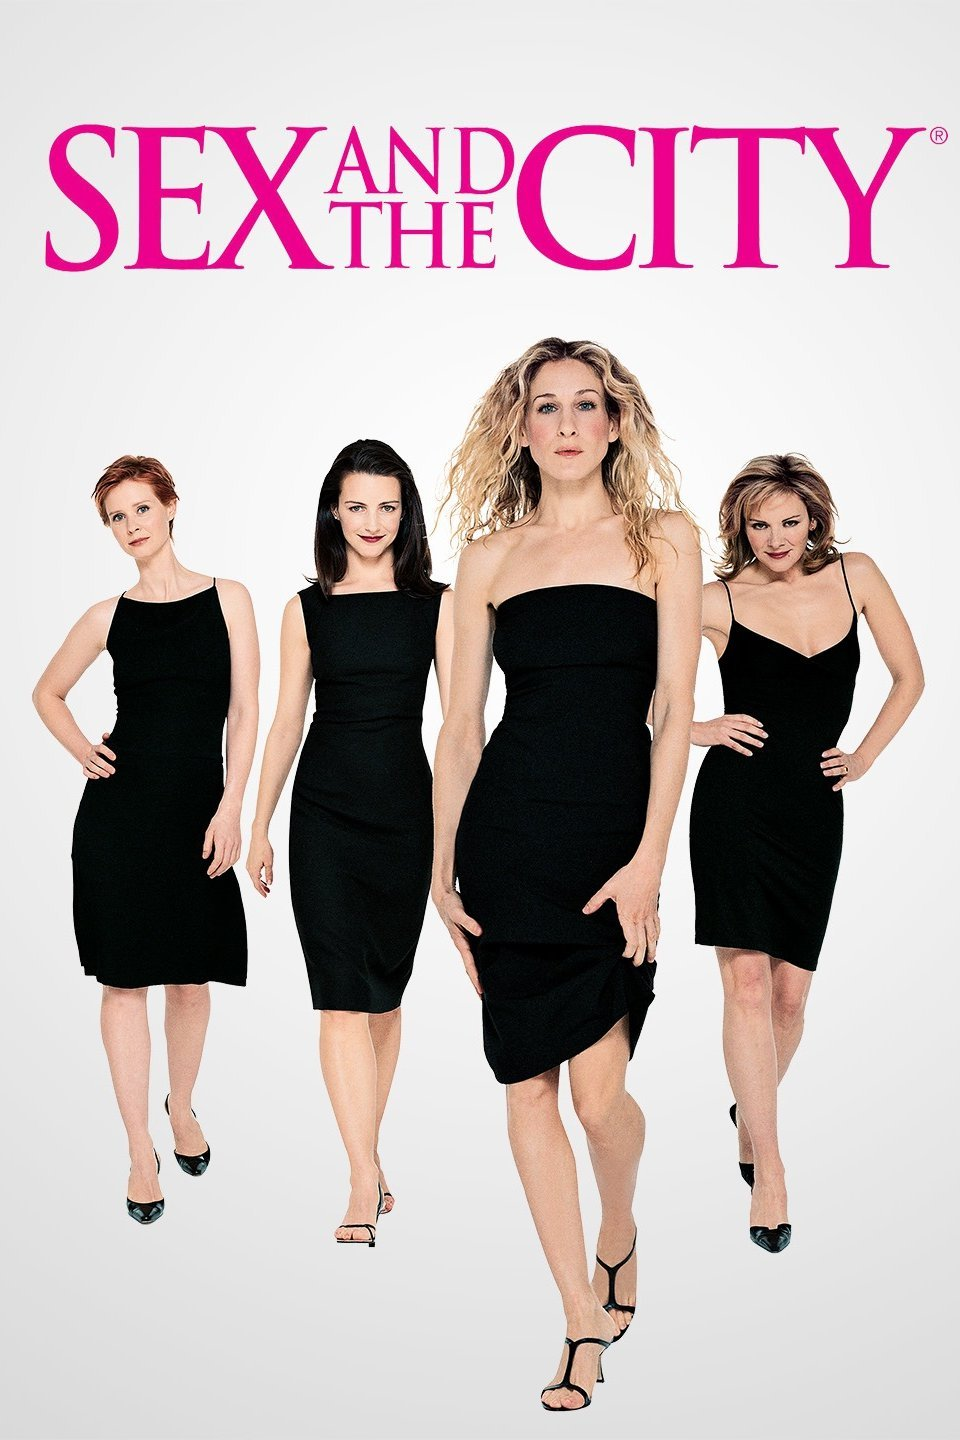 How many seasons of sex in the city